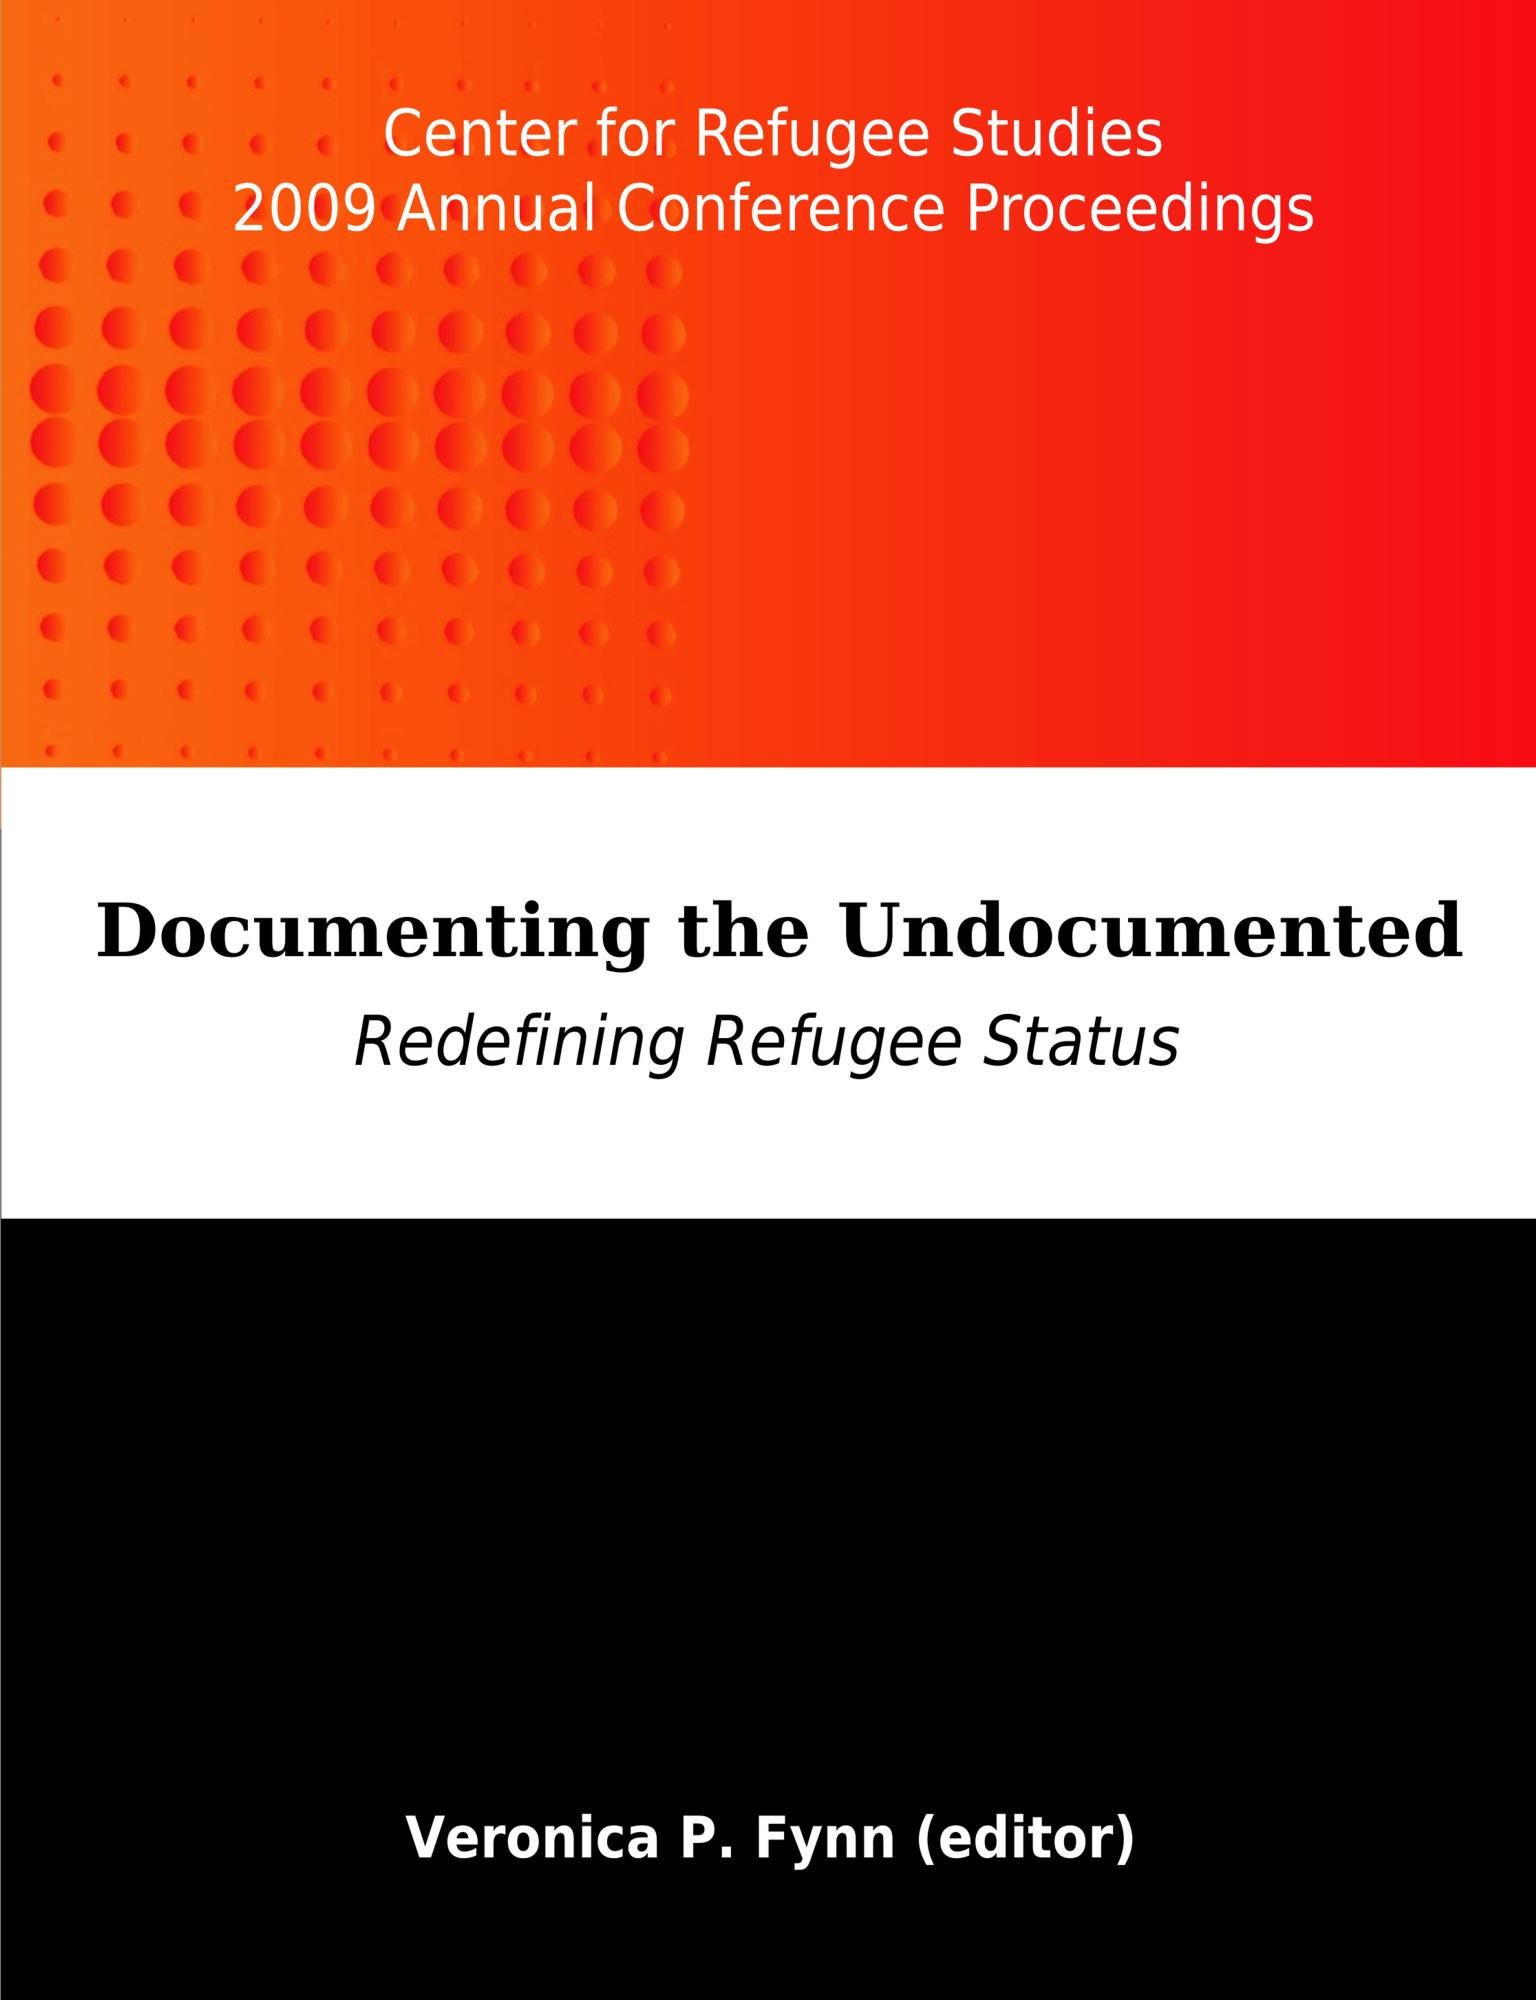 Documenting the Undocumented: Redefining Refugee Status: Center for Refugee Studies 2009 Annual Conference Proceedings EB9781599428475